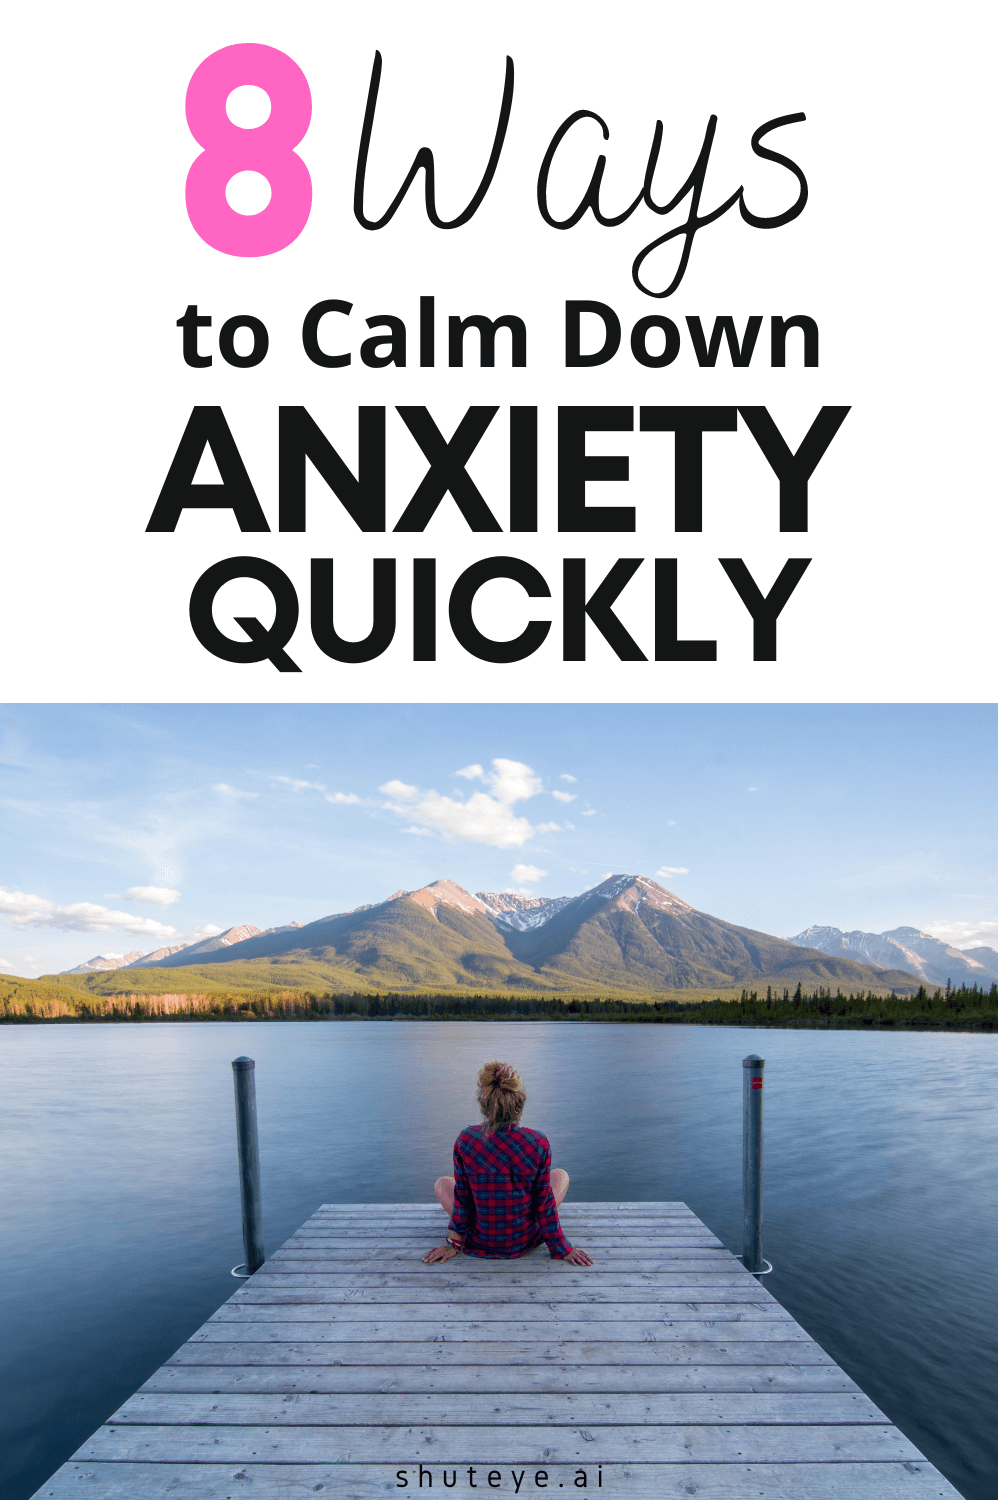 How to Calm Down Anxiety Quickly? 8 Ways Here!